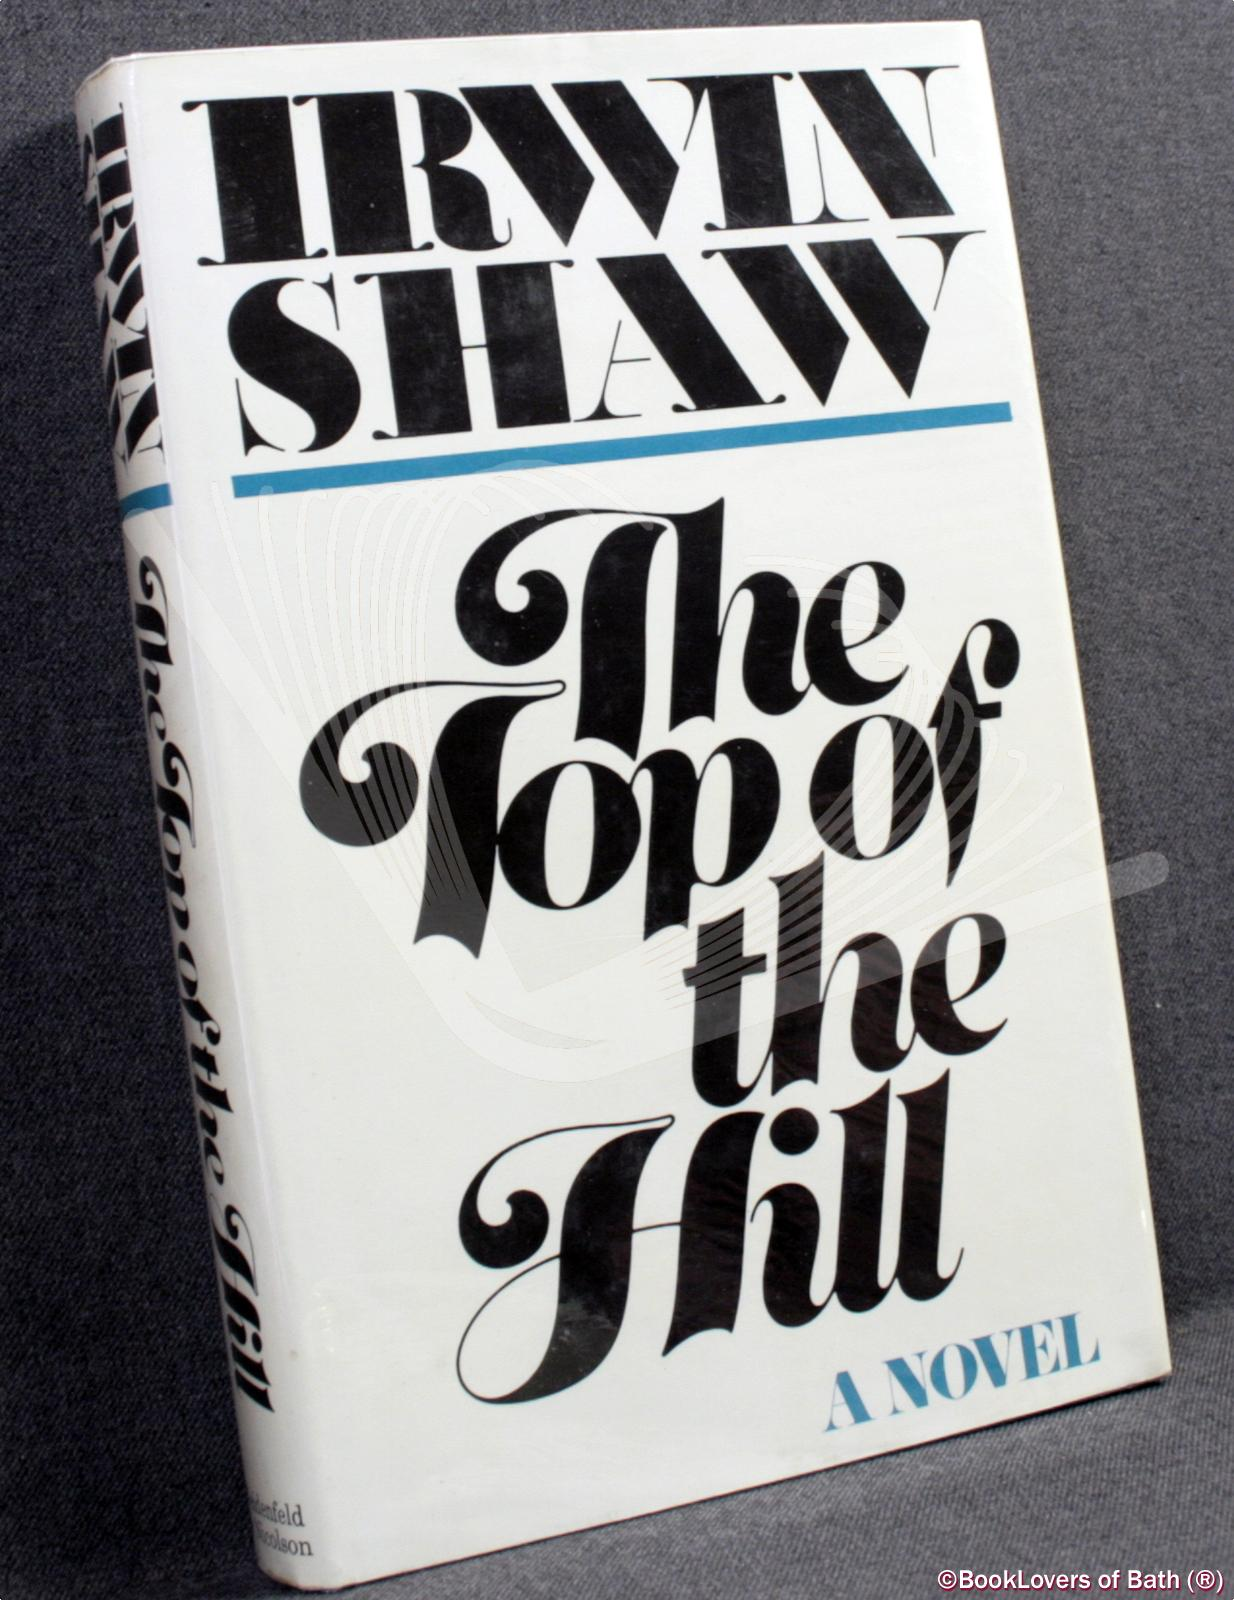 The Top of the Hill - Shaw